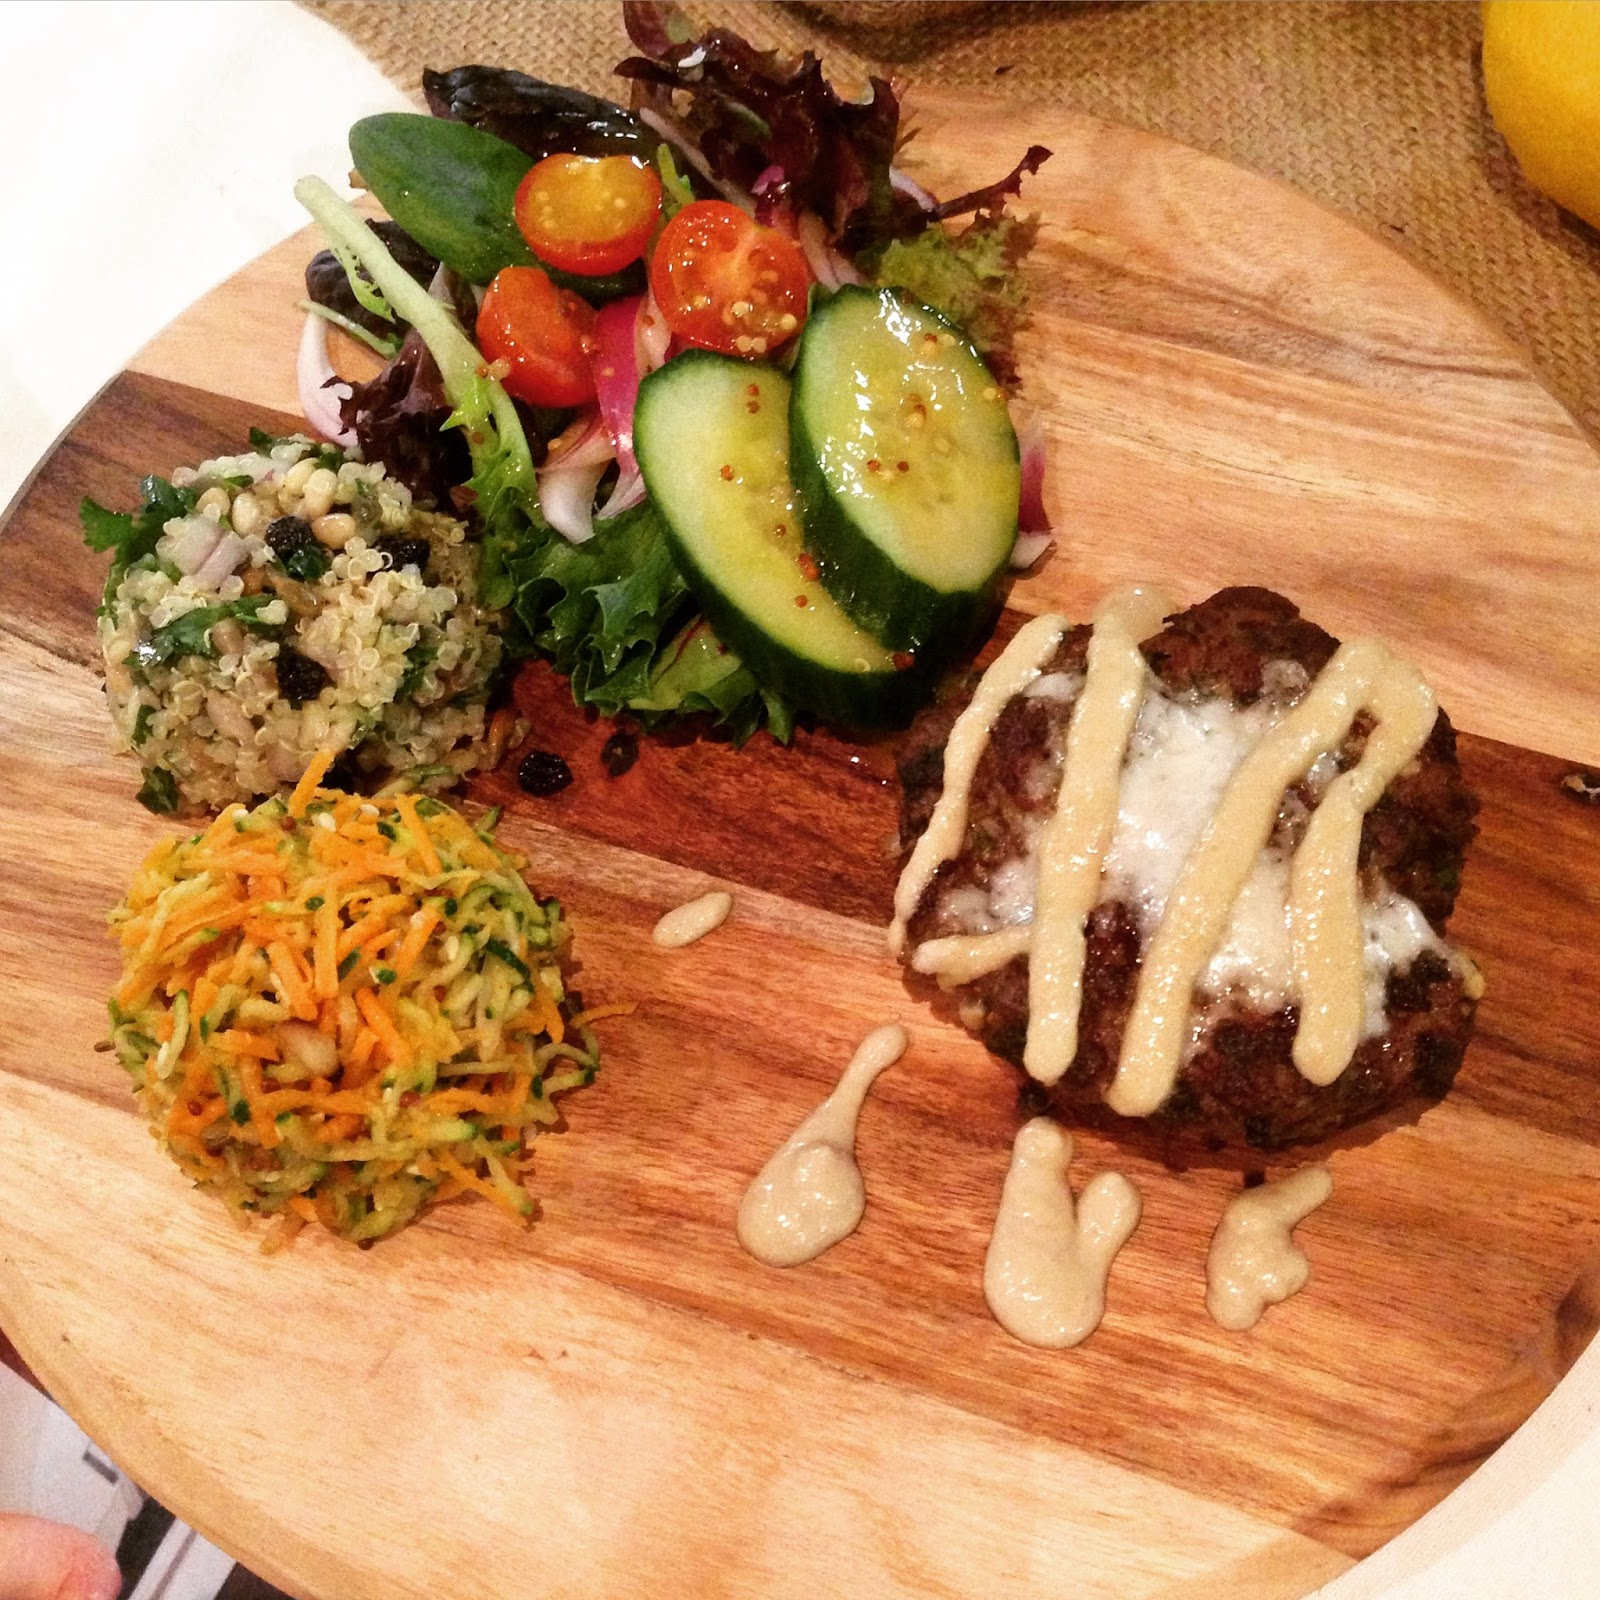 caffe paparazzi, adelaide, food, beef, burger, clean eating, healthy, no bun burger, cafe, dinner, lunch, salad